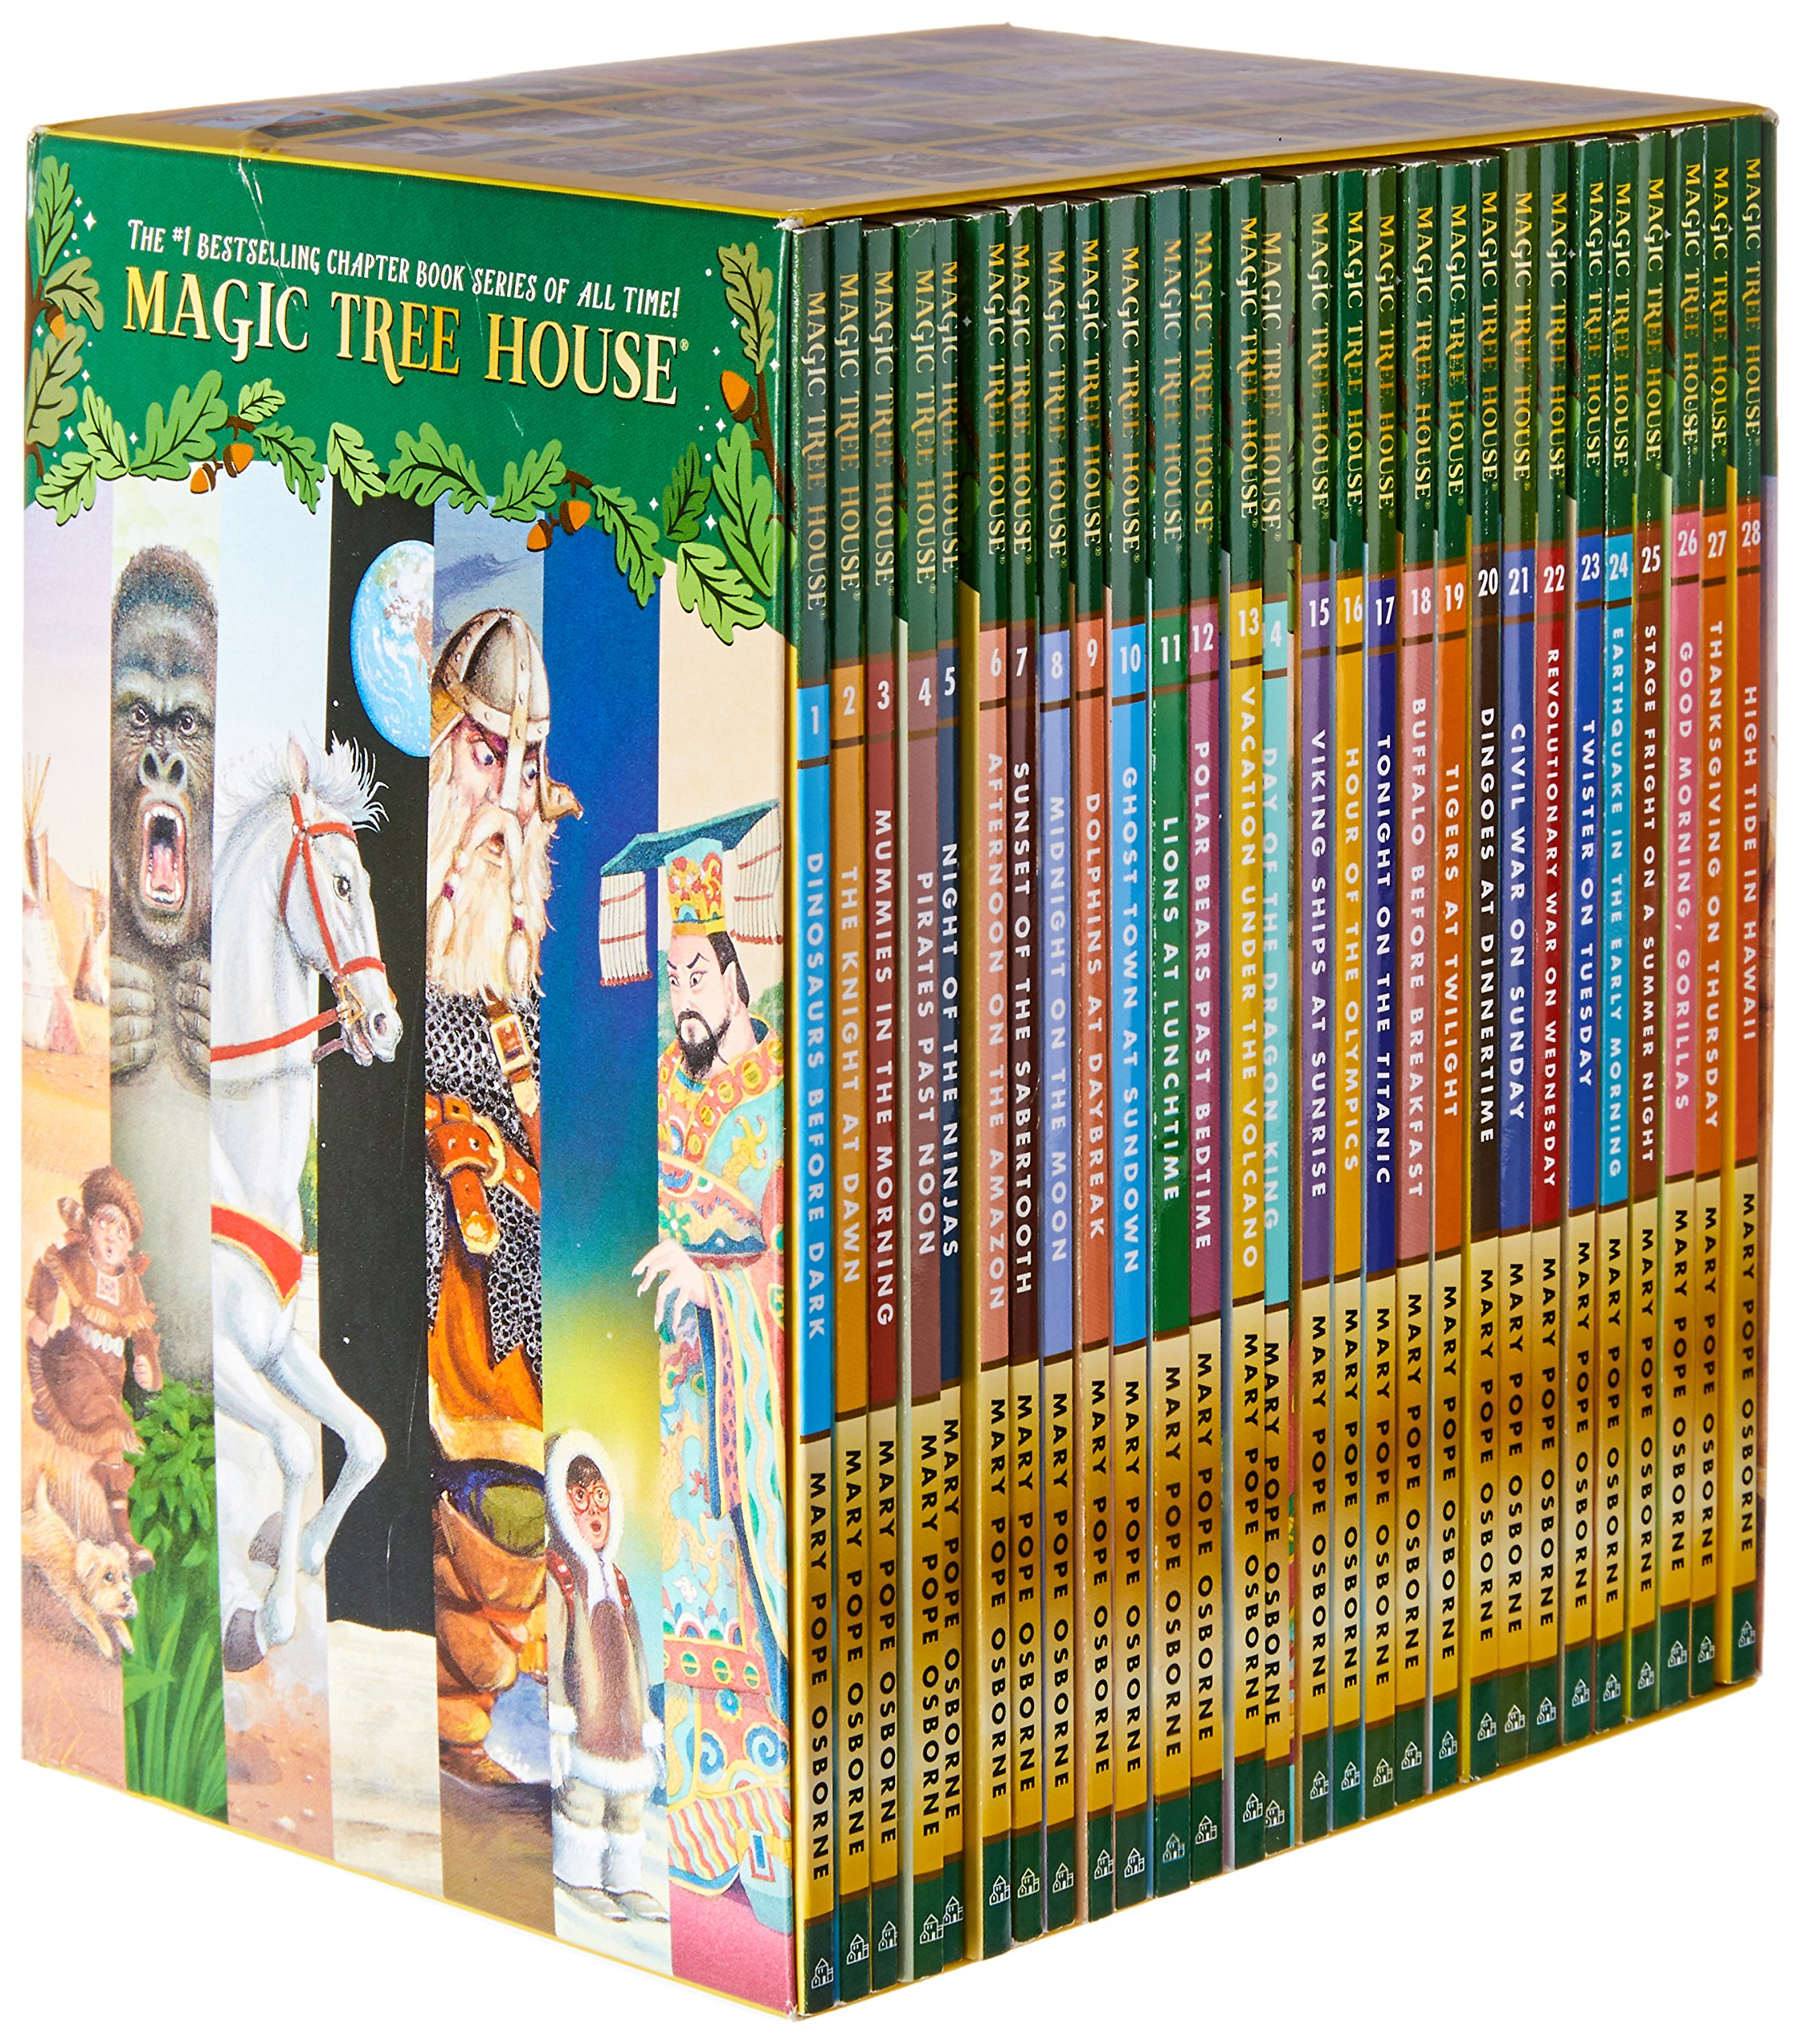 Magic Tree House 1 28 29 55